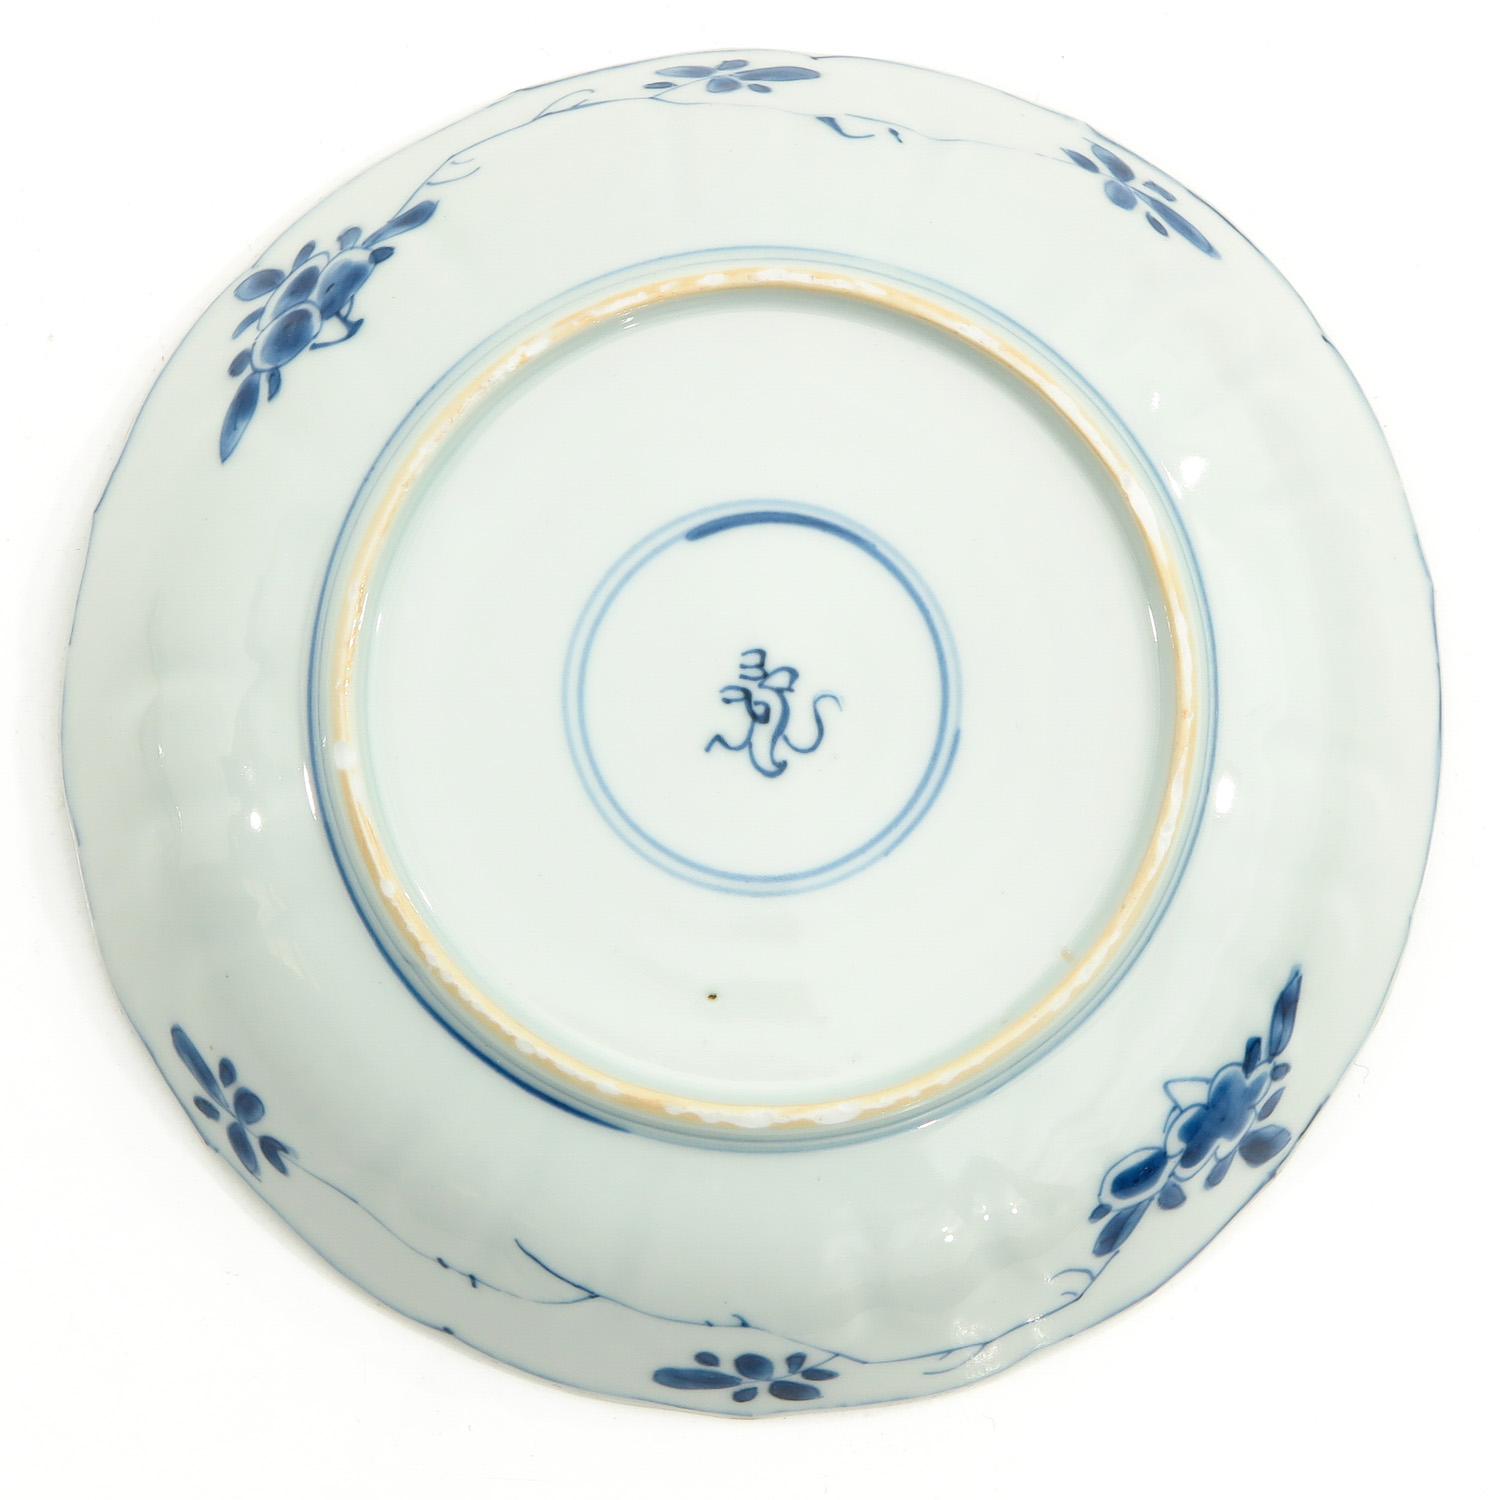 2 Blue and White Plates - Image 6 of 10